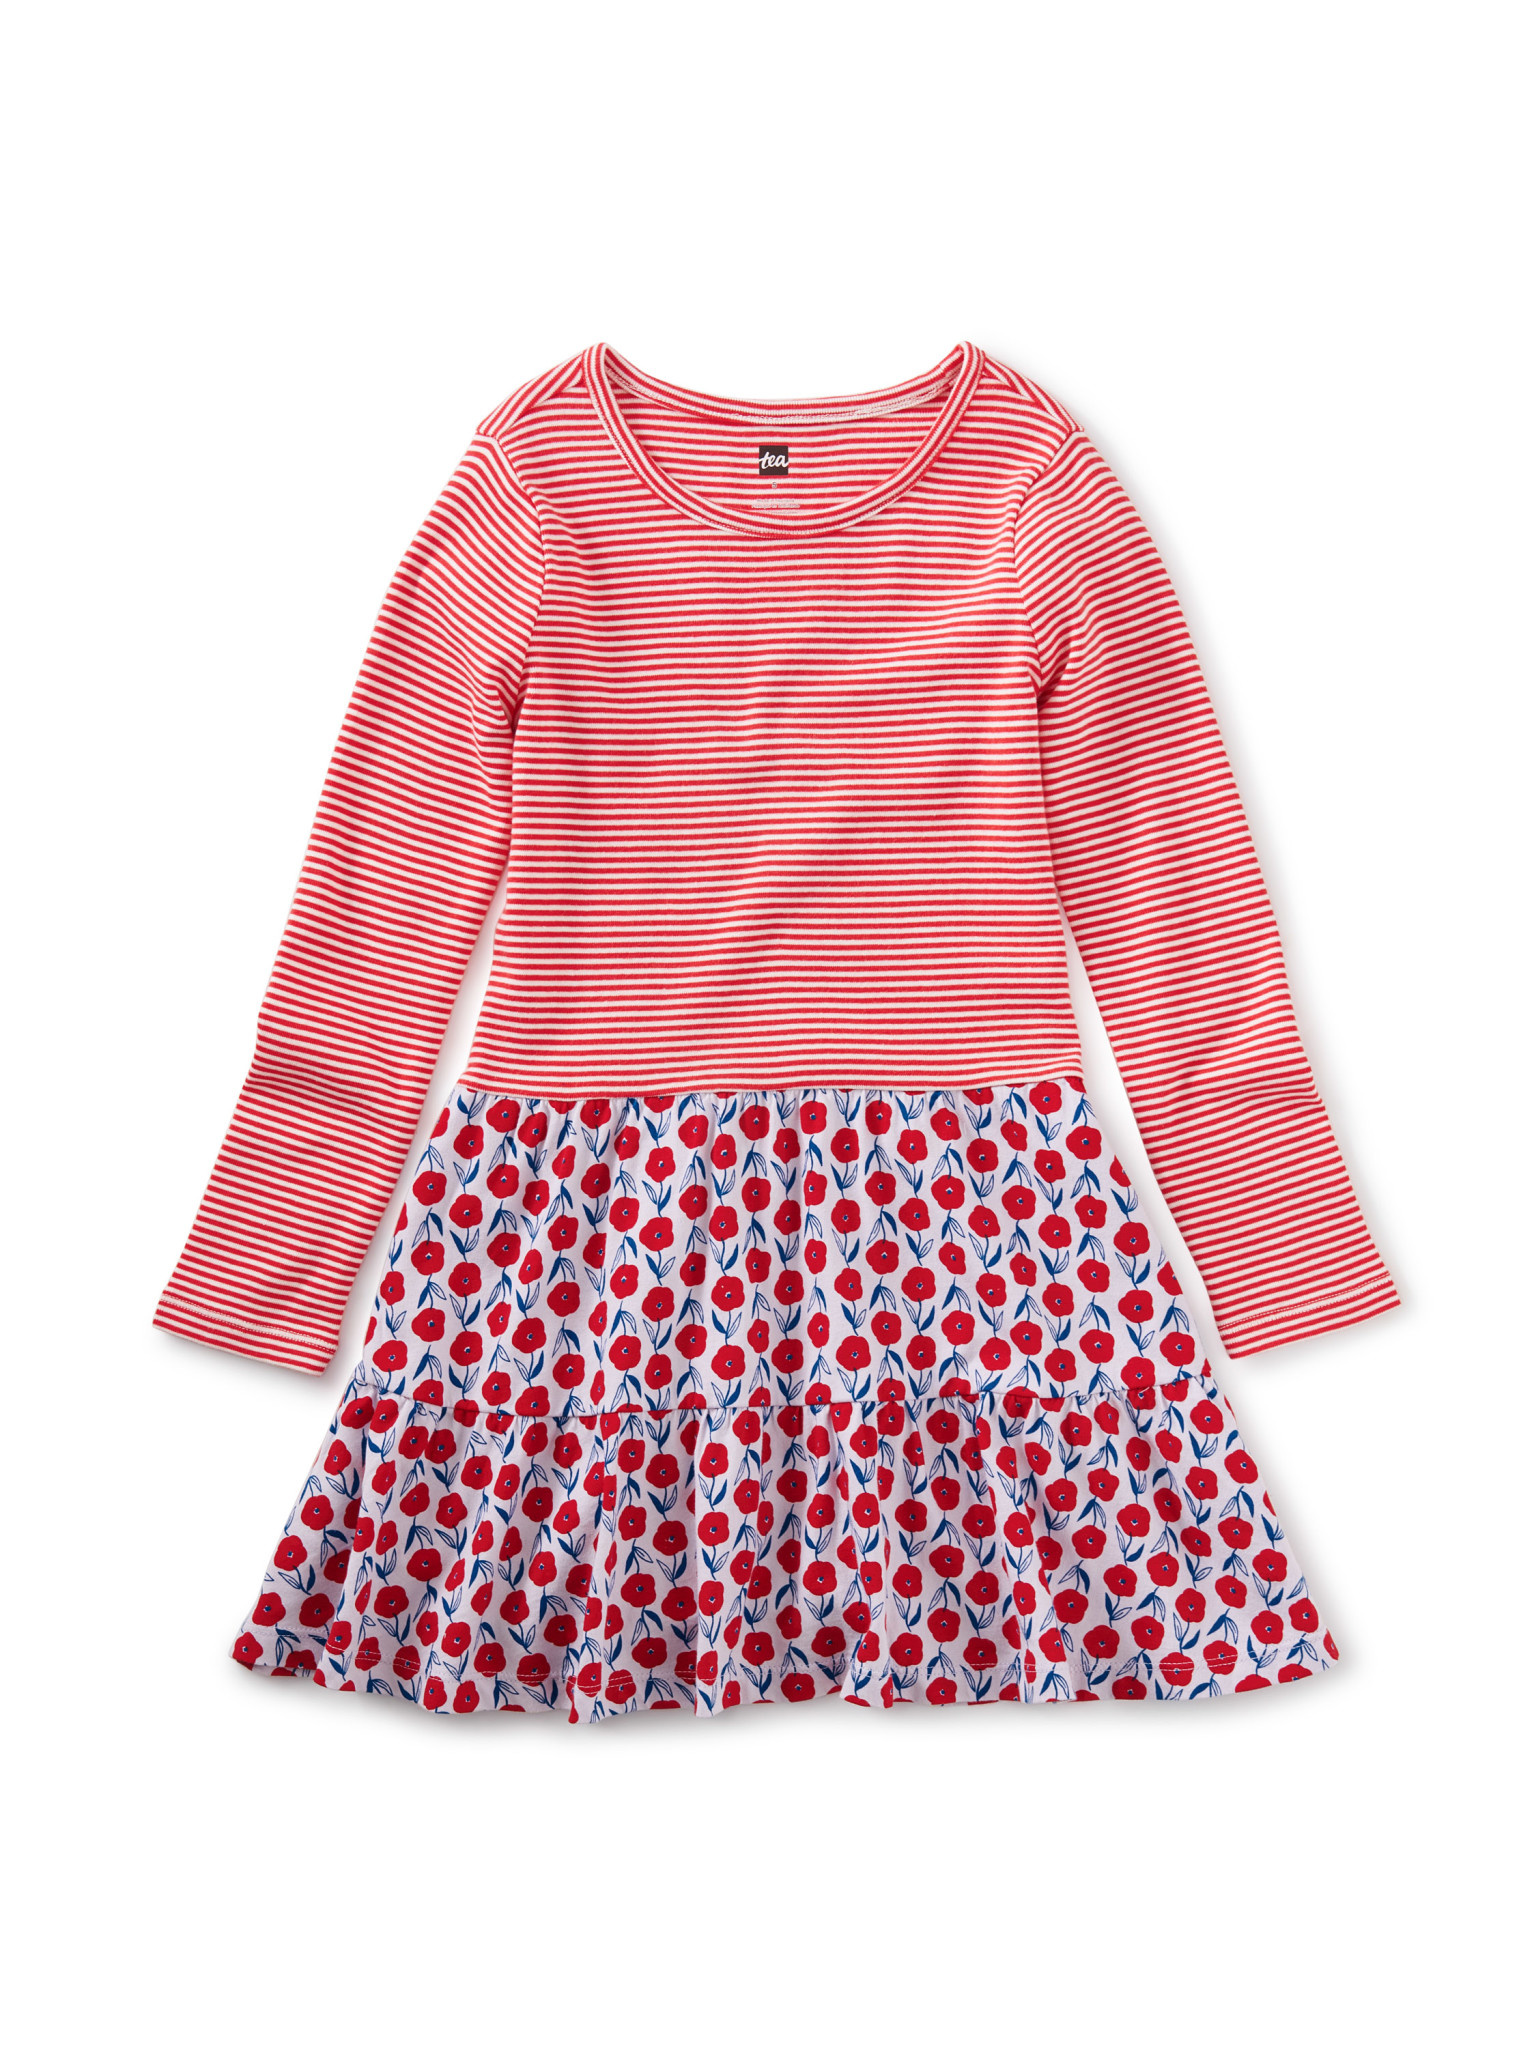 Tea Collection Tiered Skirted Dress